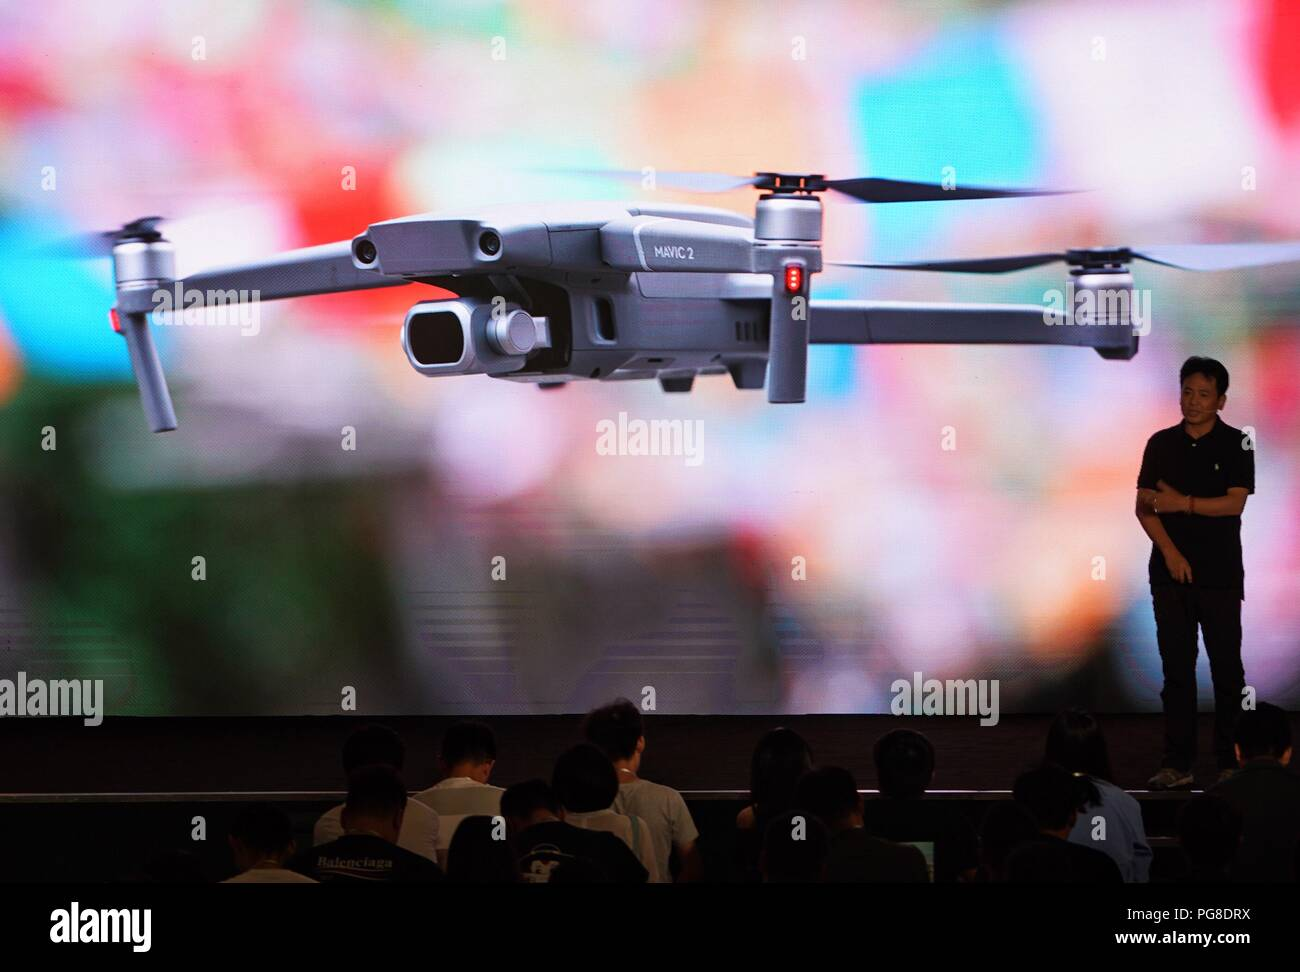 Beijing, China. 24th Aug, 2018. A photographer introduces his experience of the newly-released DJI Mavic 2 Pro drone during a launching event in Beijing, capital of China, Aug. 24, 2018. Chinese drone manufacturer DJI released its new Mavic drone Friday. Credit: Xing Guangli/Xinhua/Alamy Live News - Stock Image